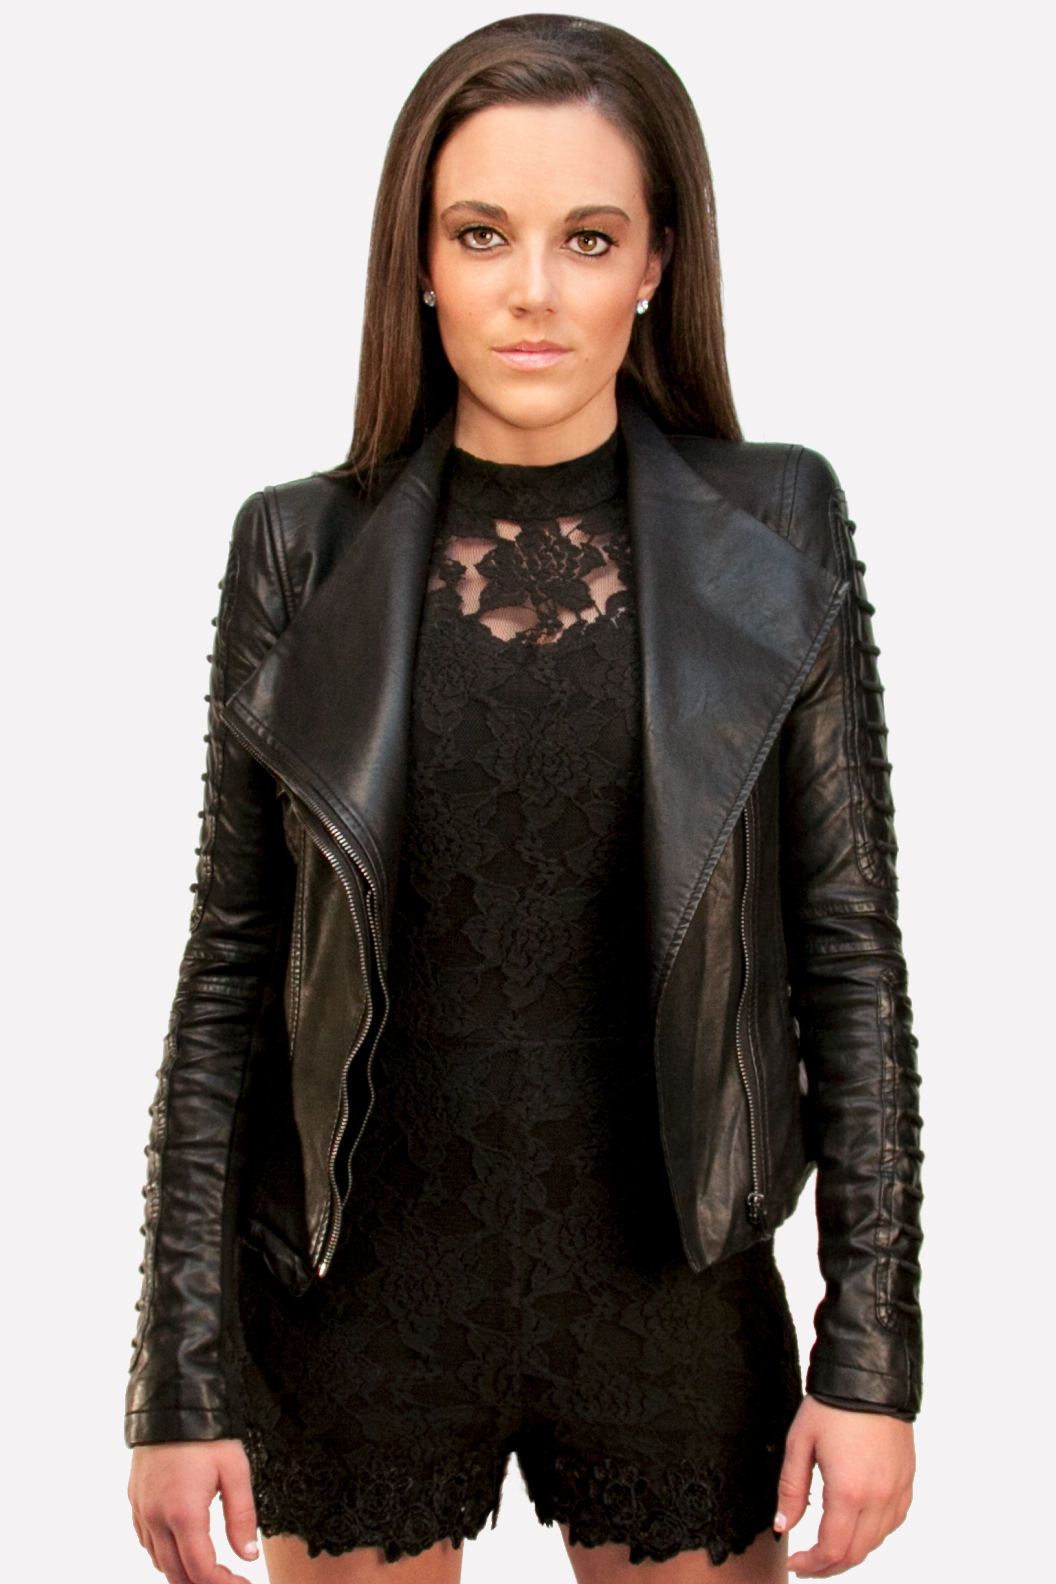 Black Leather Jacket Very Trendy | SkyStruk